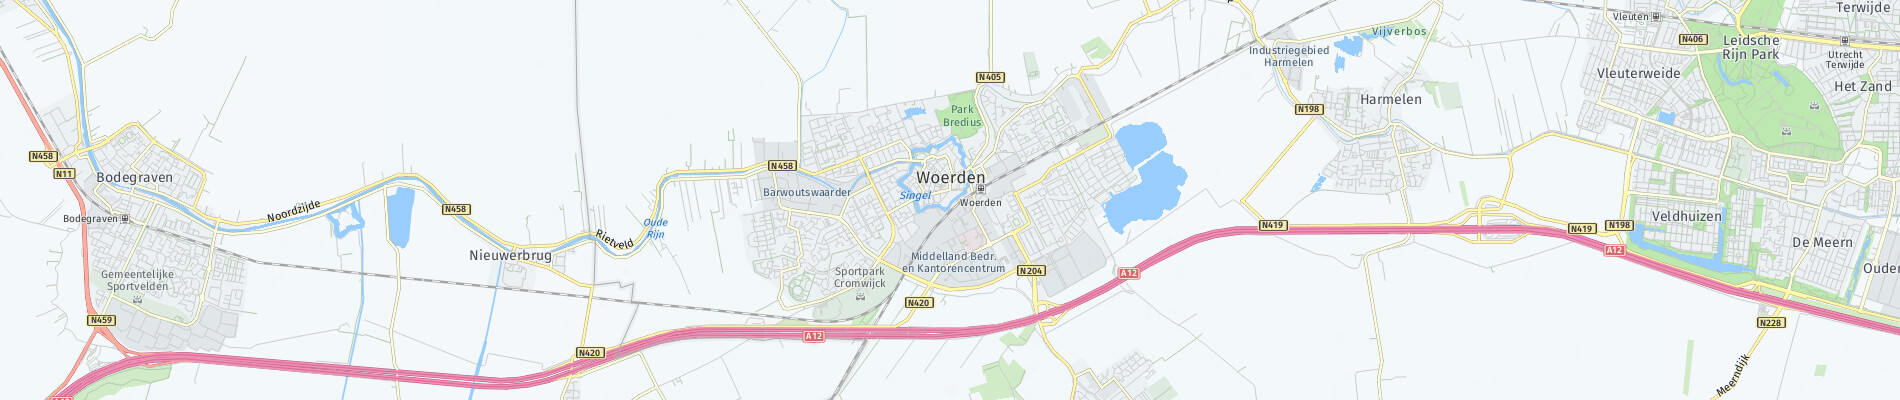 assets/images/cities/woerden.jpg